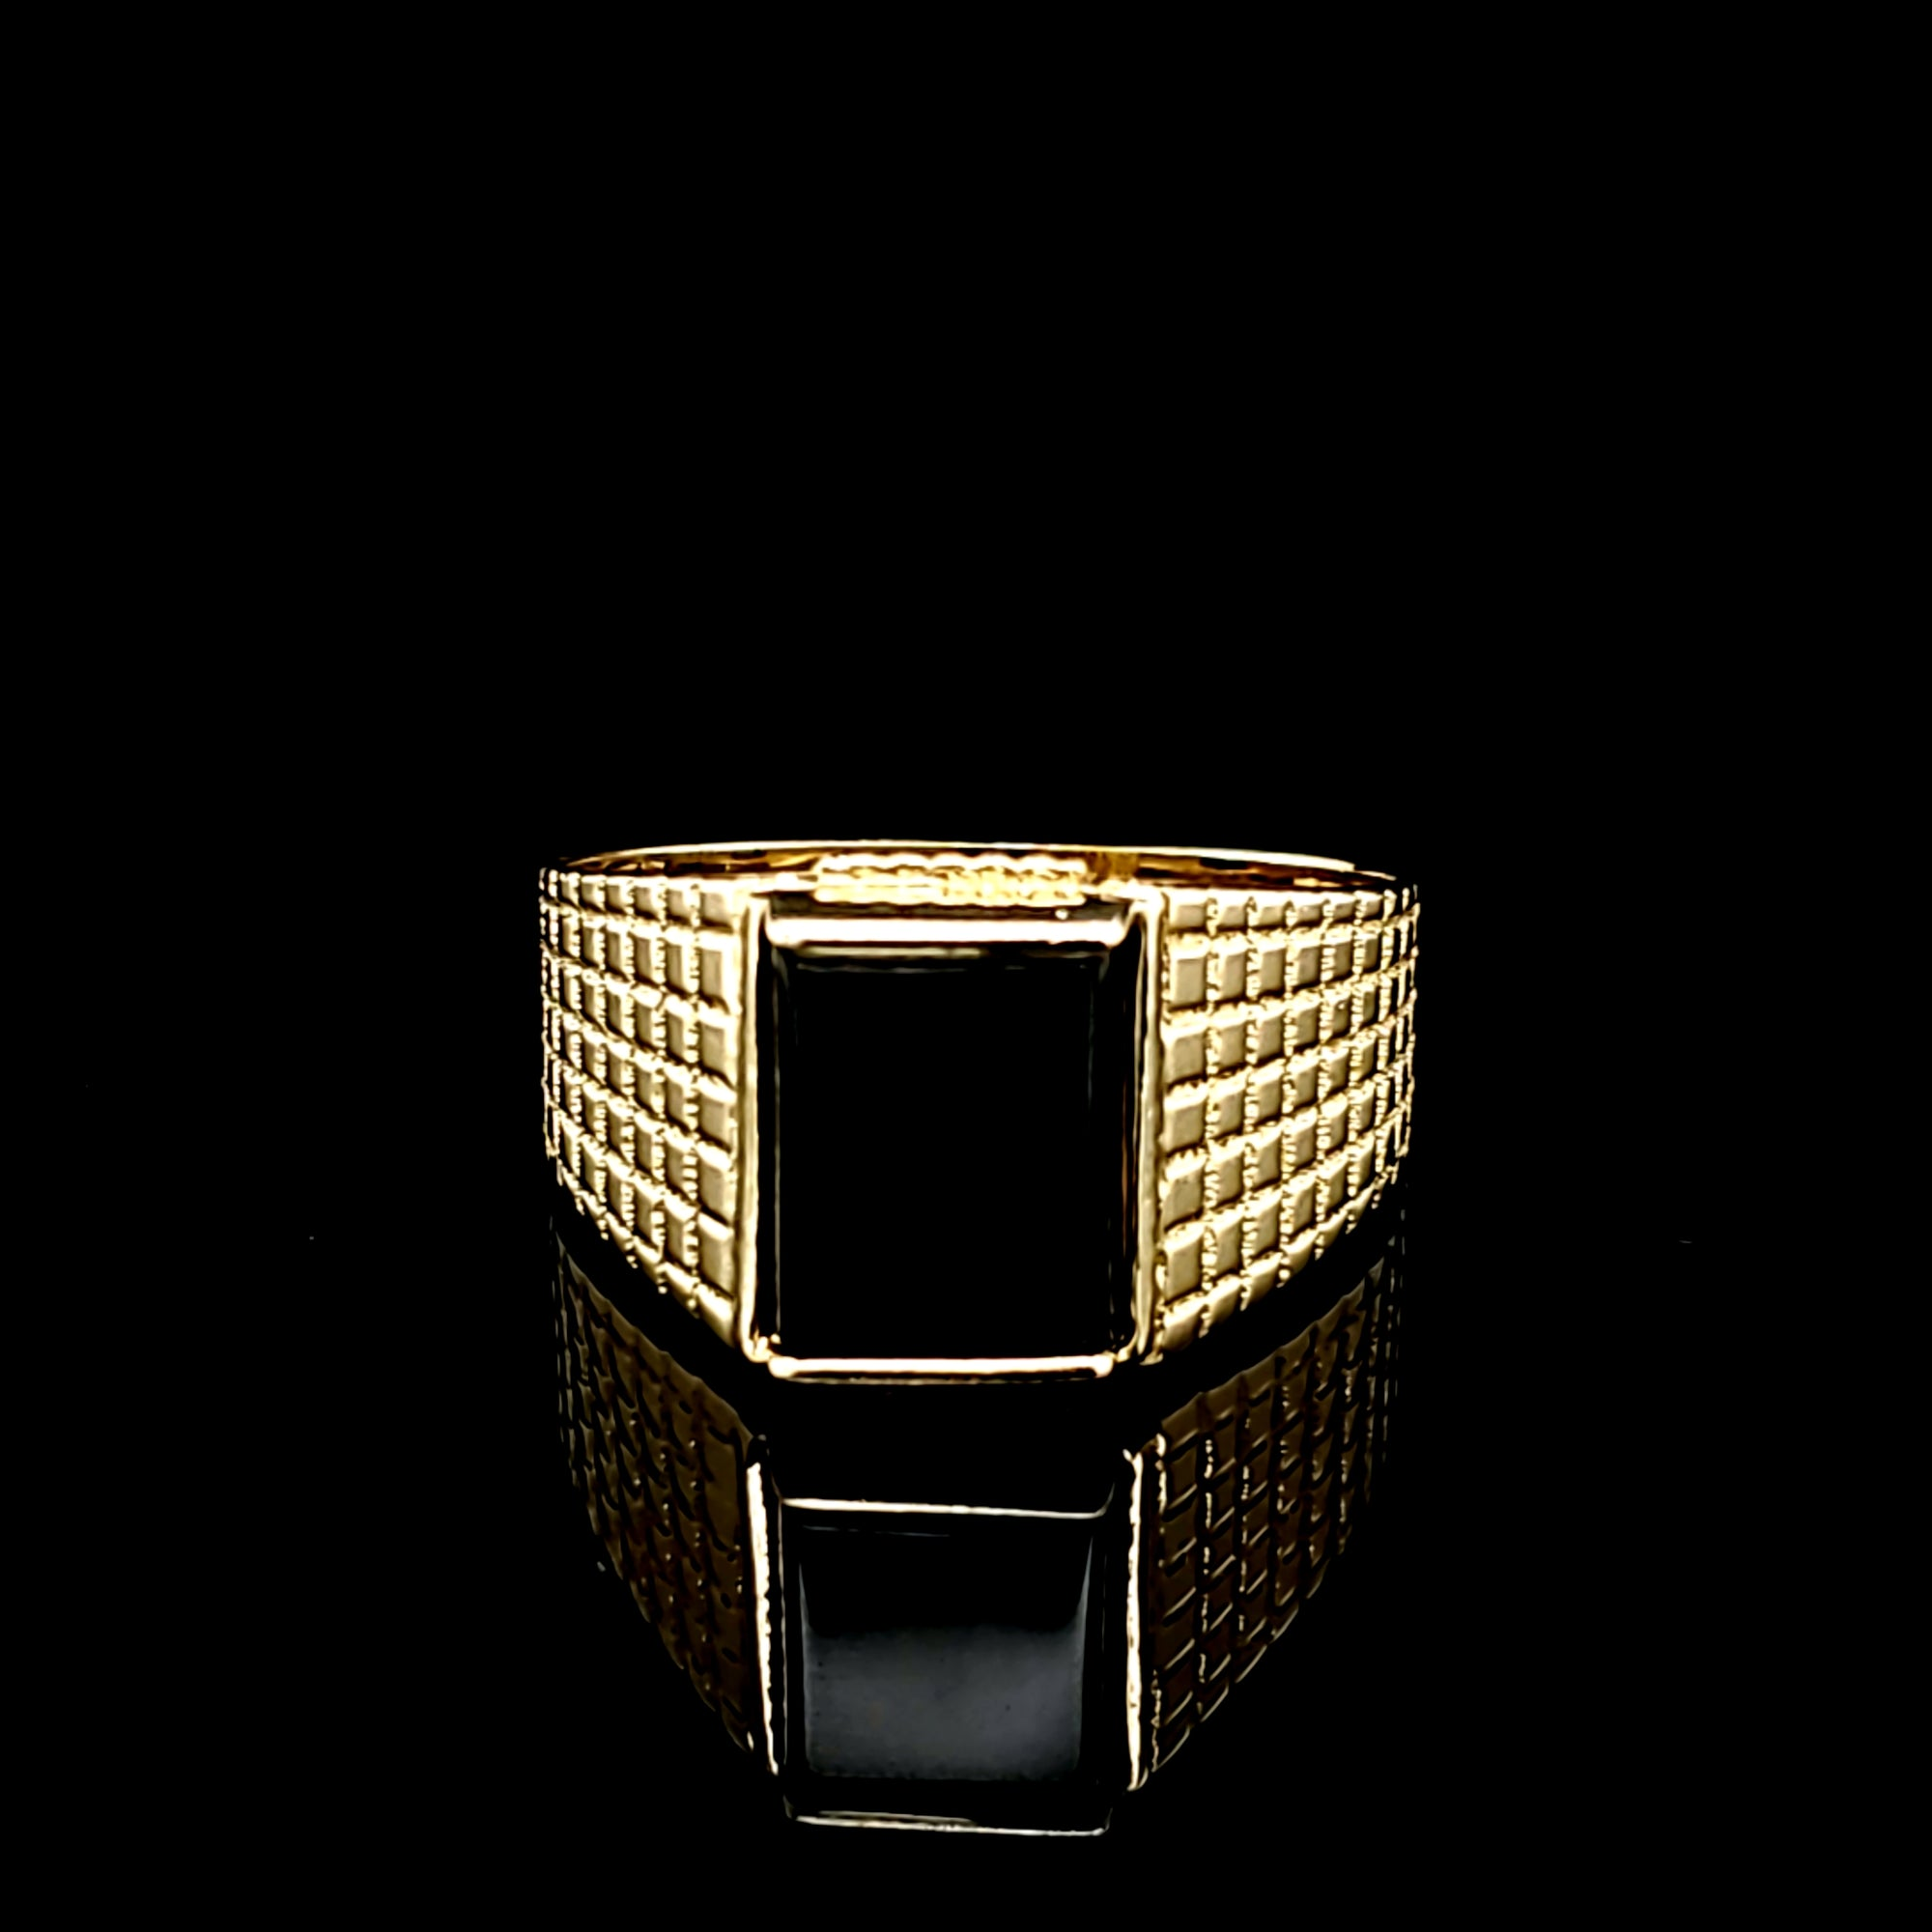 Solid 14K Gold Square Black Onyx Ring For Men